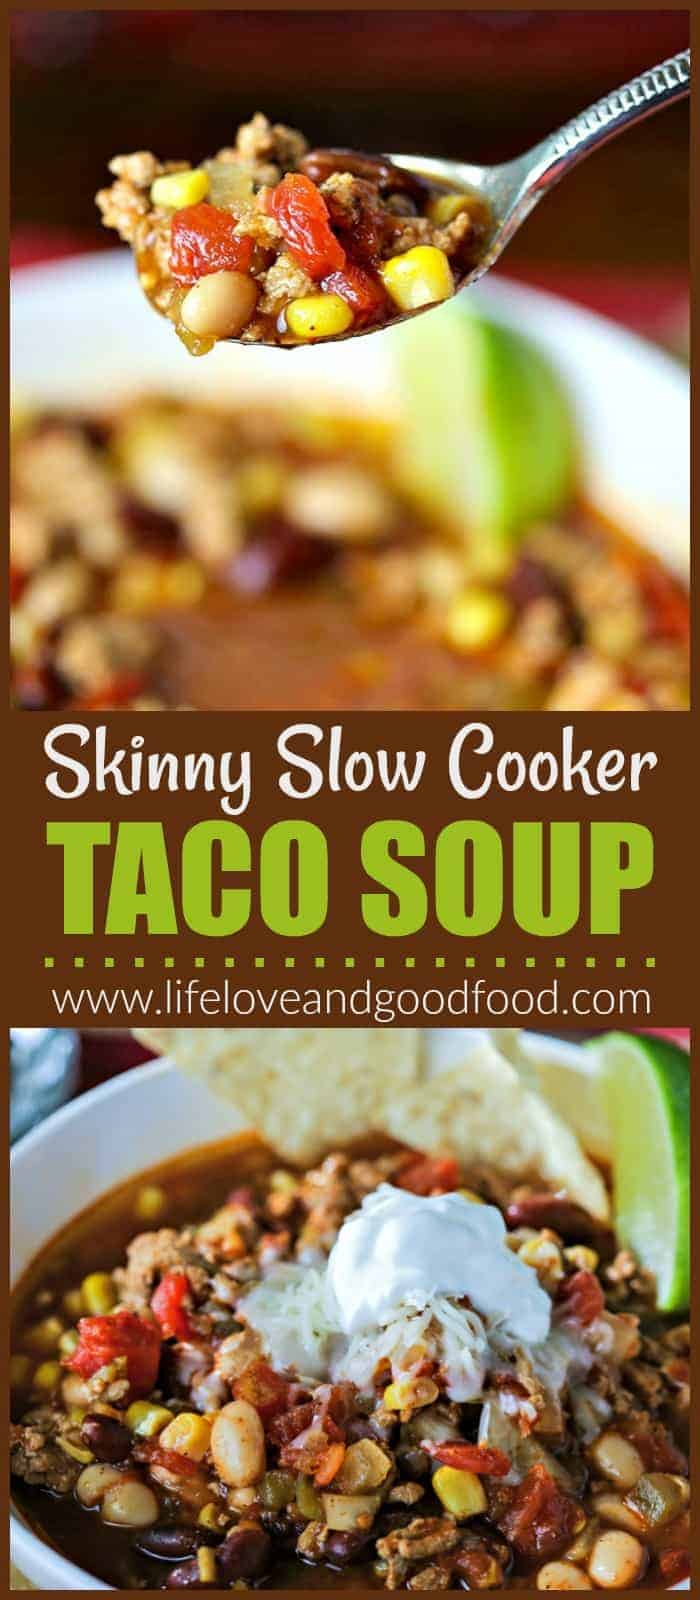 Skinny Taco Soup made in the slow cooker is packed with flavor and super simple to prepare. Sauté onions and turkey, open a few cans, and you're good to go!